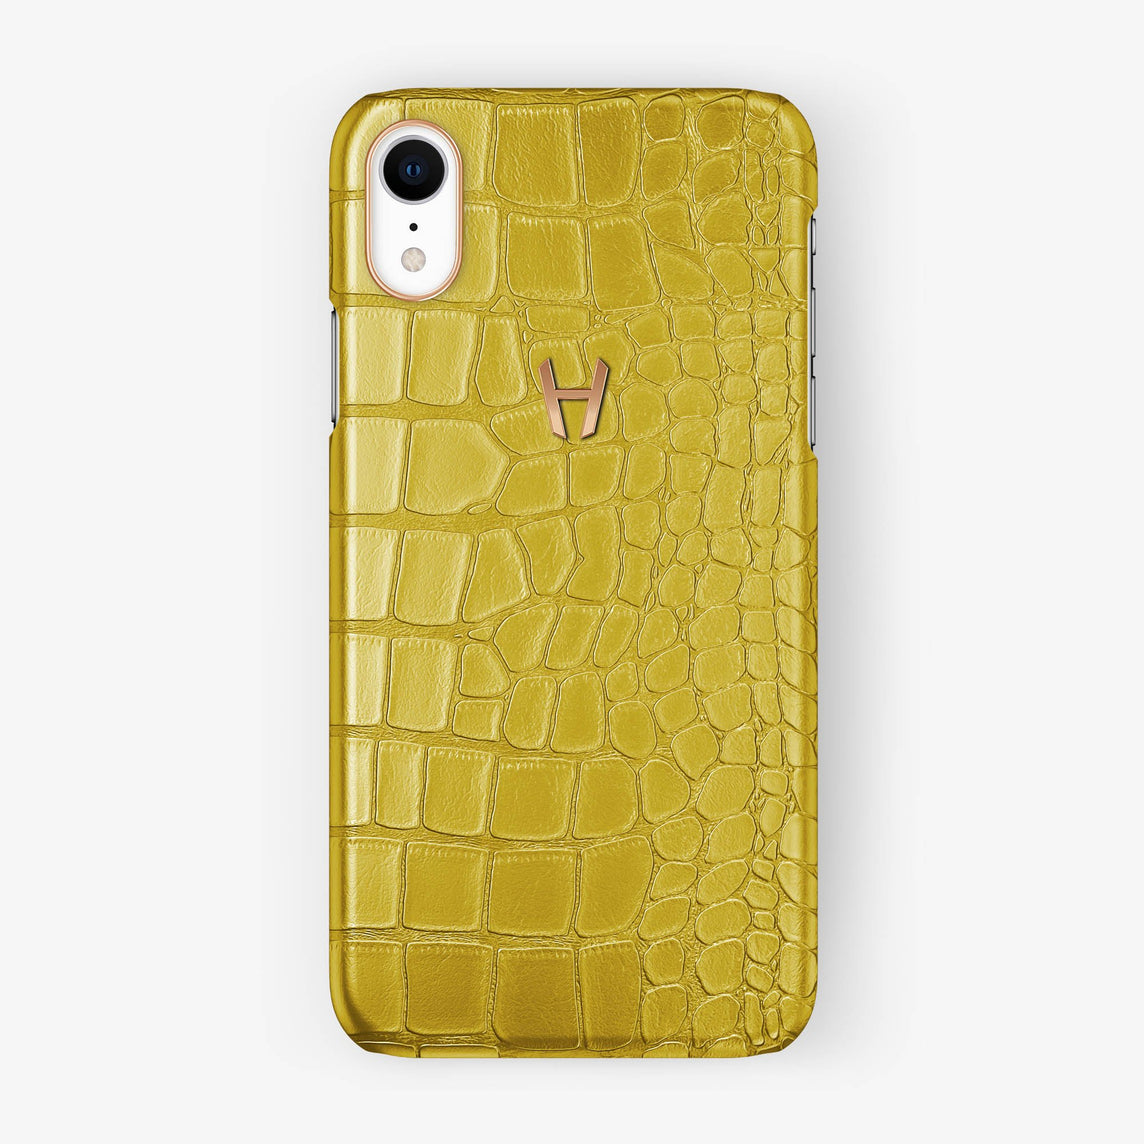 Alligator [iPhone Case] [model:iphone-xr-case] [colour:yellow] [finishing:rose-gold]